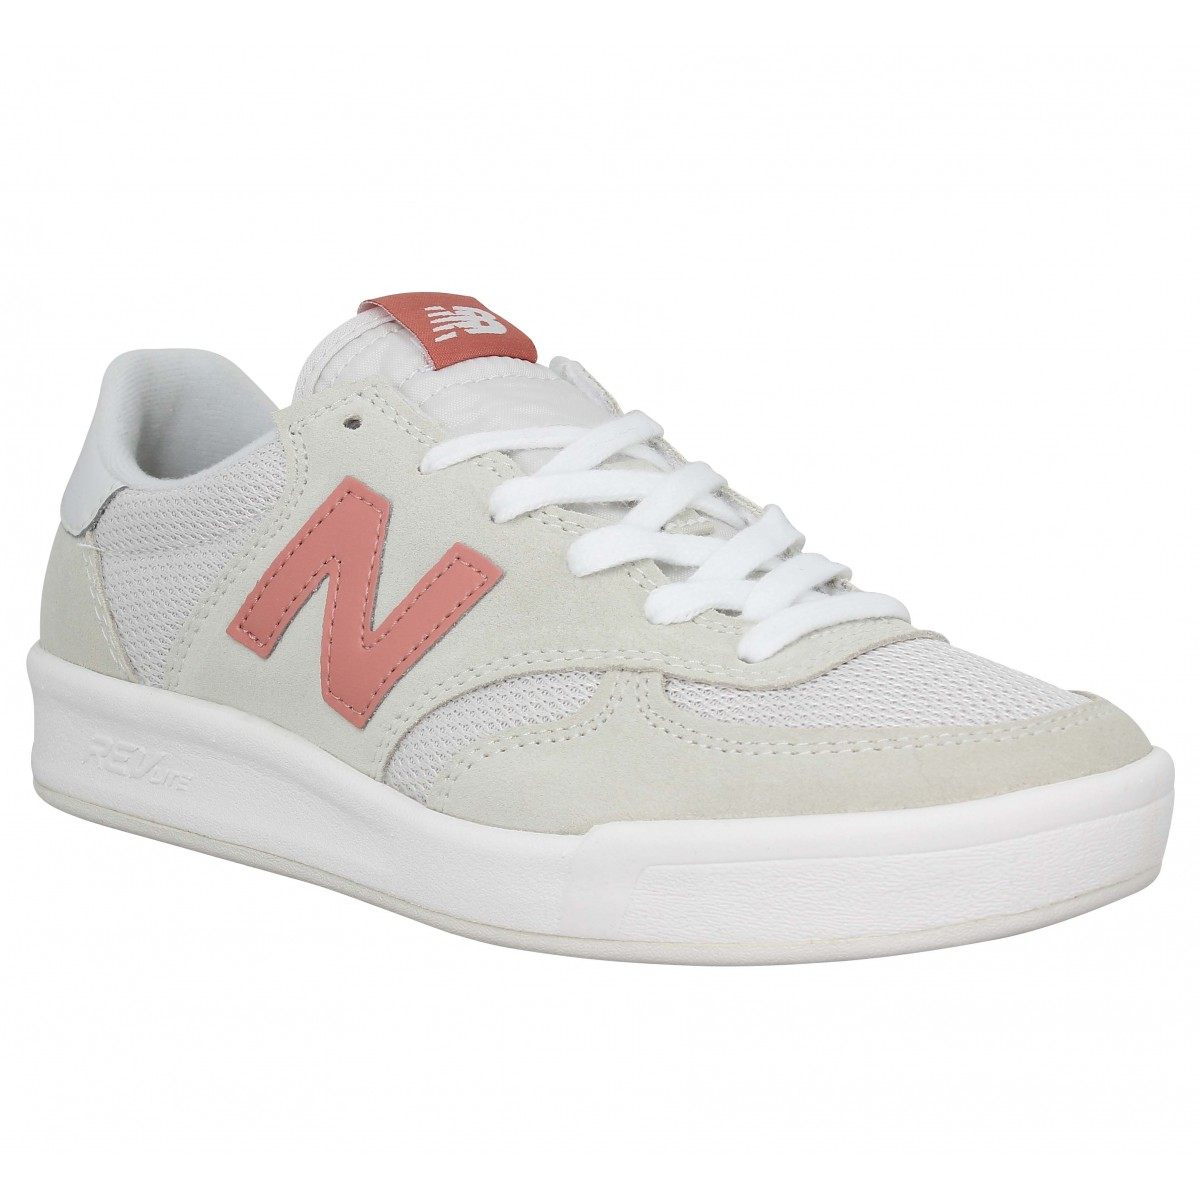 New Balance Marque Wrt300 Velours Toile...